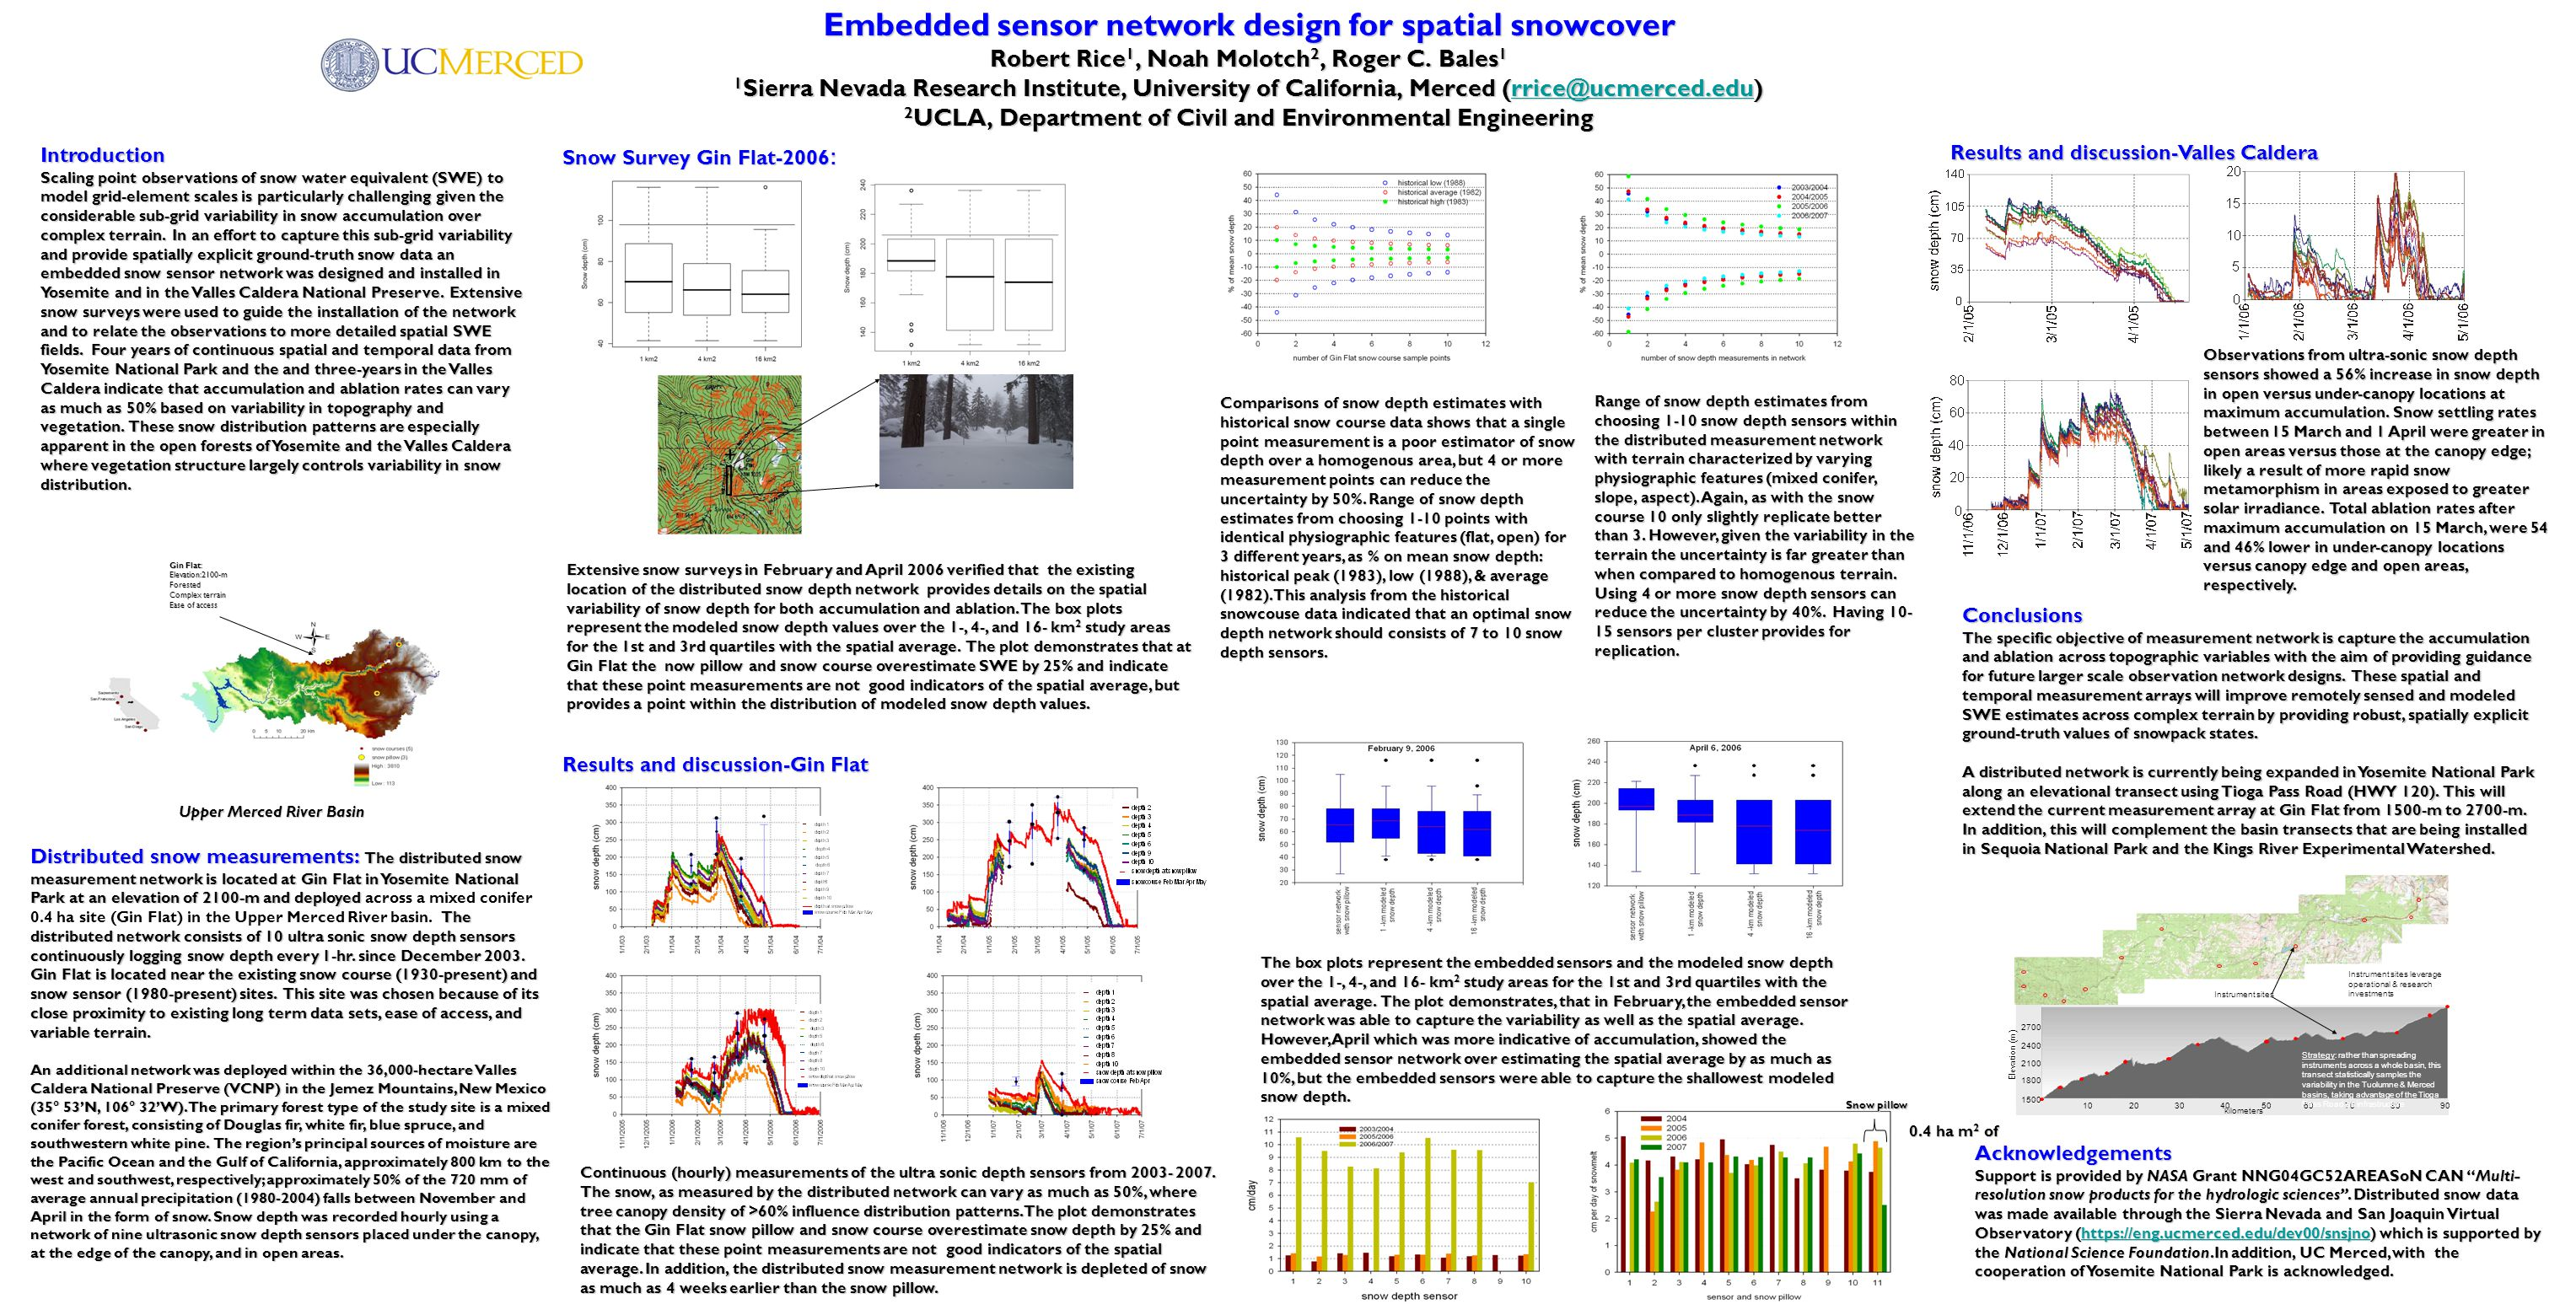 Embedded sensor network design for spatial snowcover Robert Rice 1, Noah Molotch 2, Roger C. Bales 1 1 Sierra Nevada Research Institute, University of